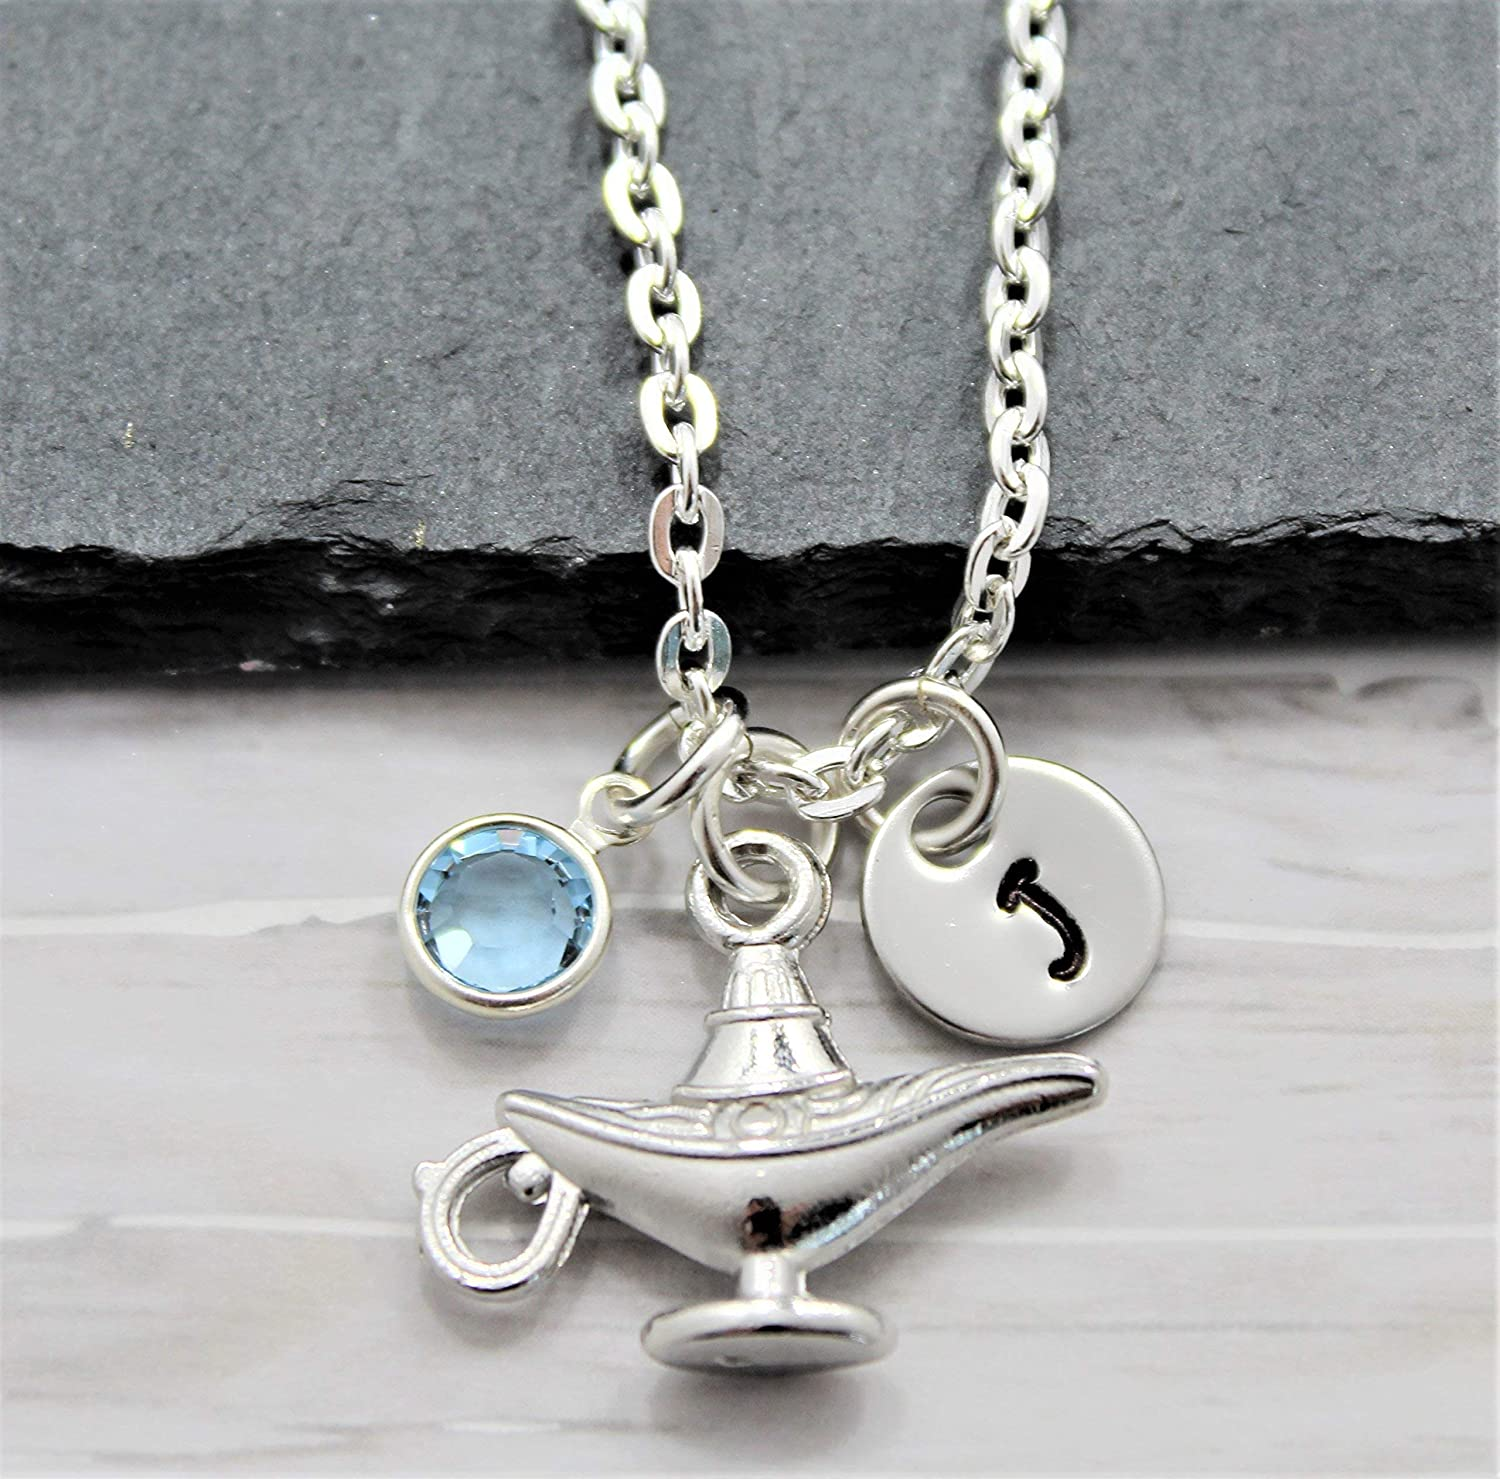 Aladdin/'s Magic Lamp Lamp Pendant Necklace Real 925 Sterling Silver Charm Necklace